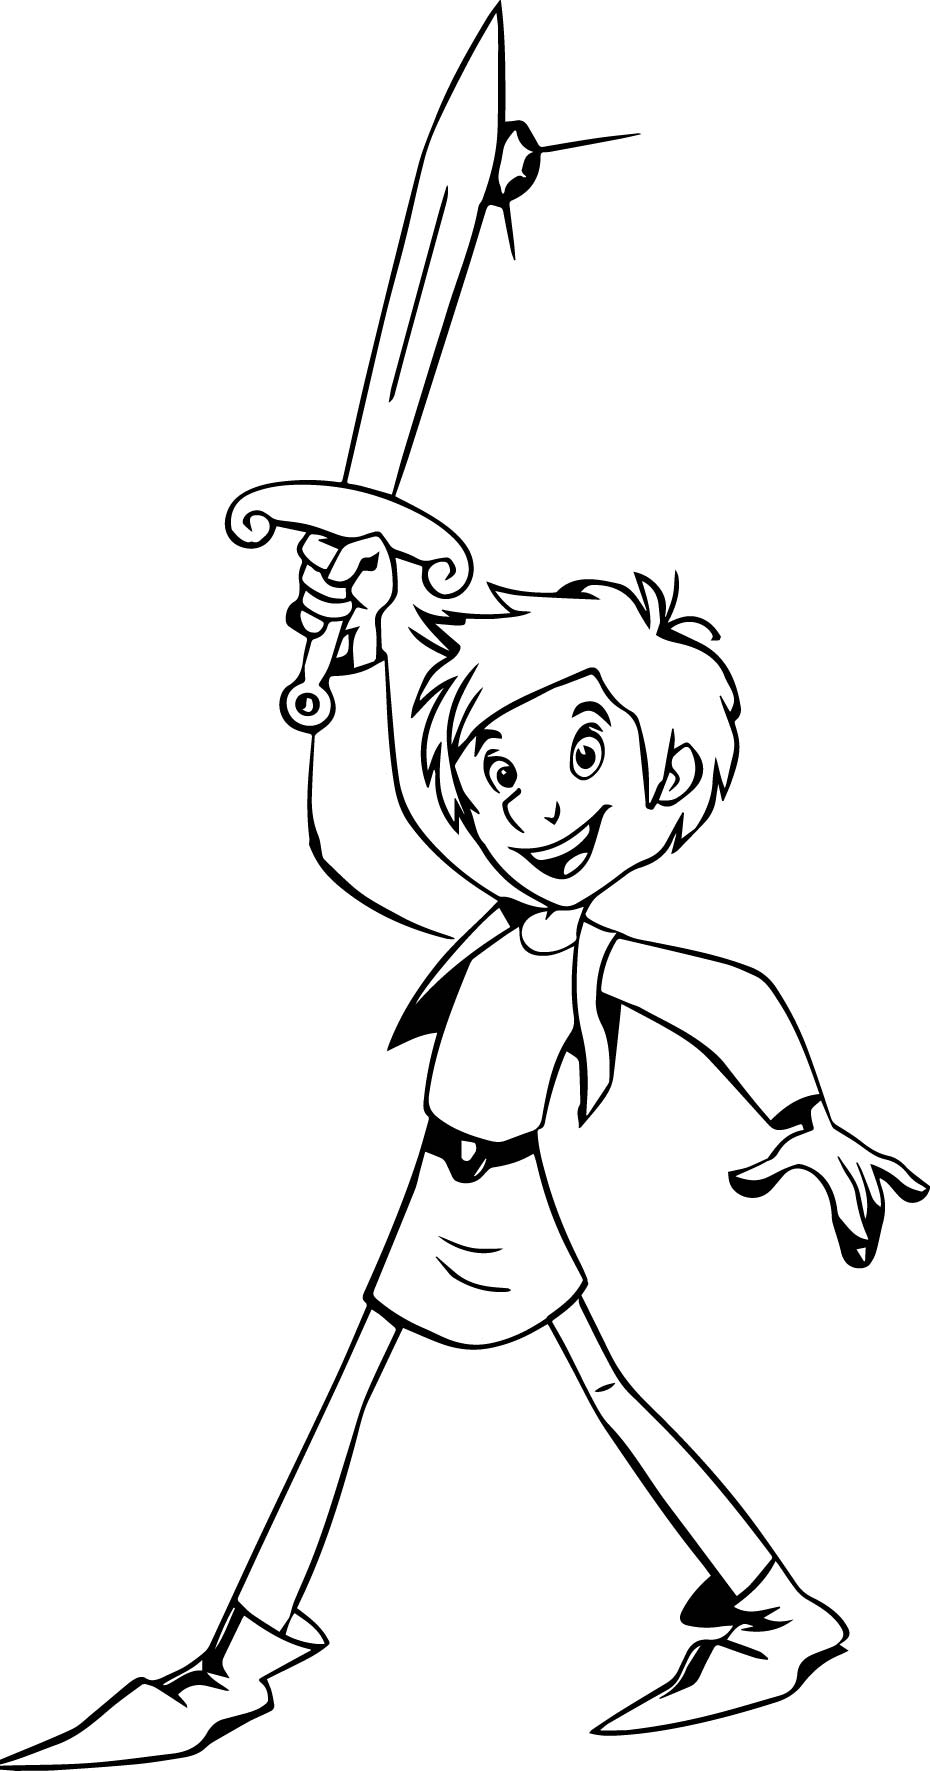 Trenk The Little Knight Trenk Coloring Page